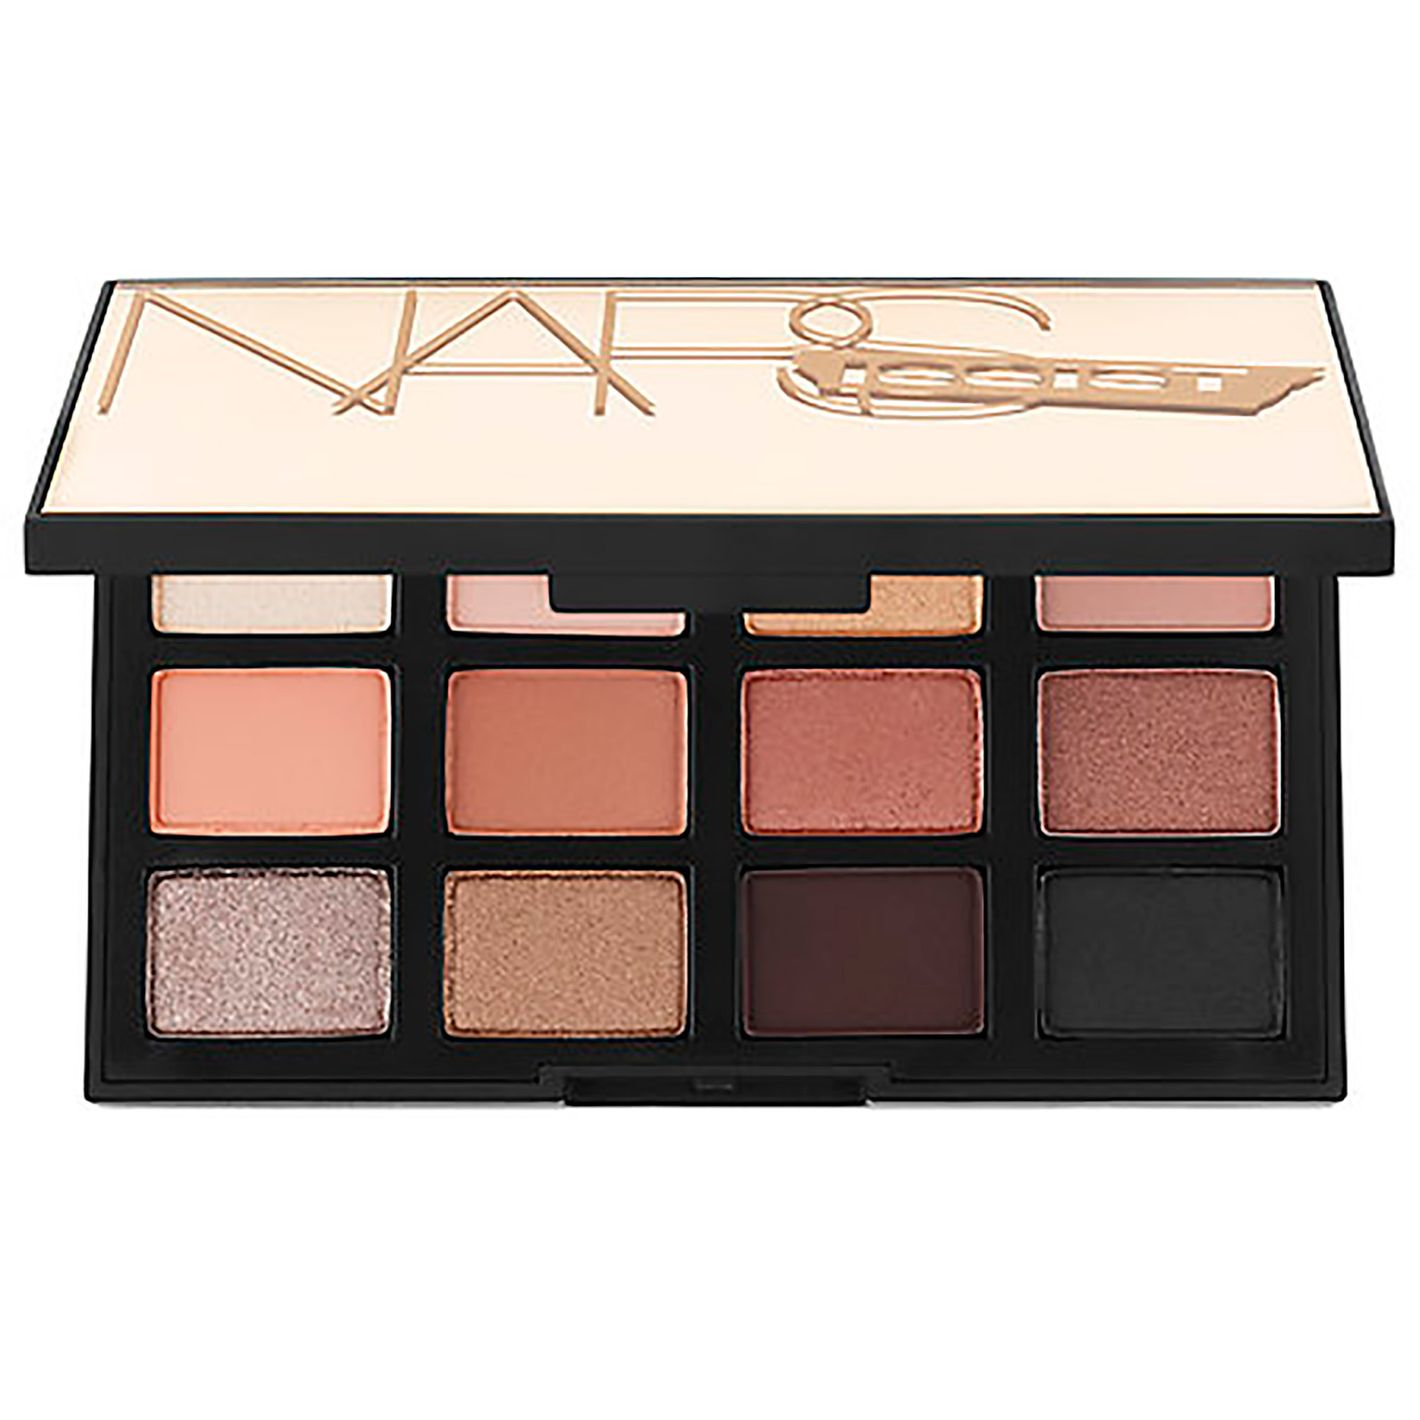 NARS Loaded Eye-shadow Palette